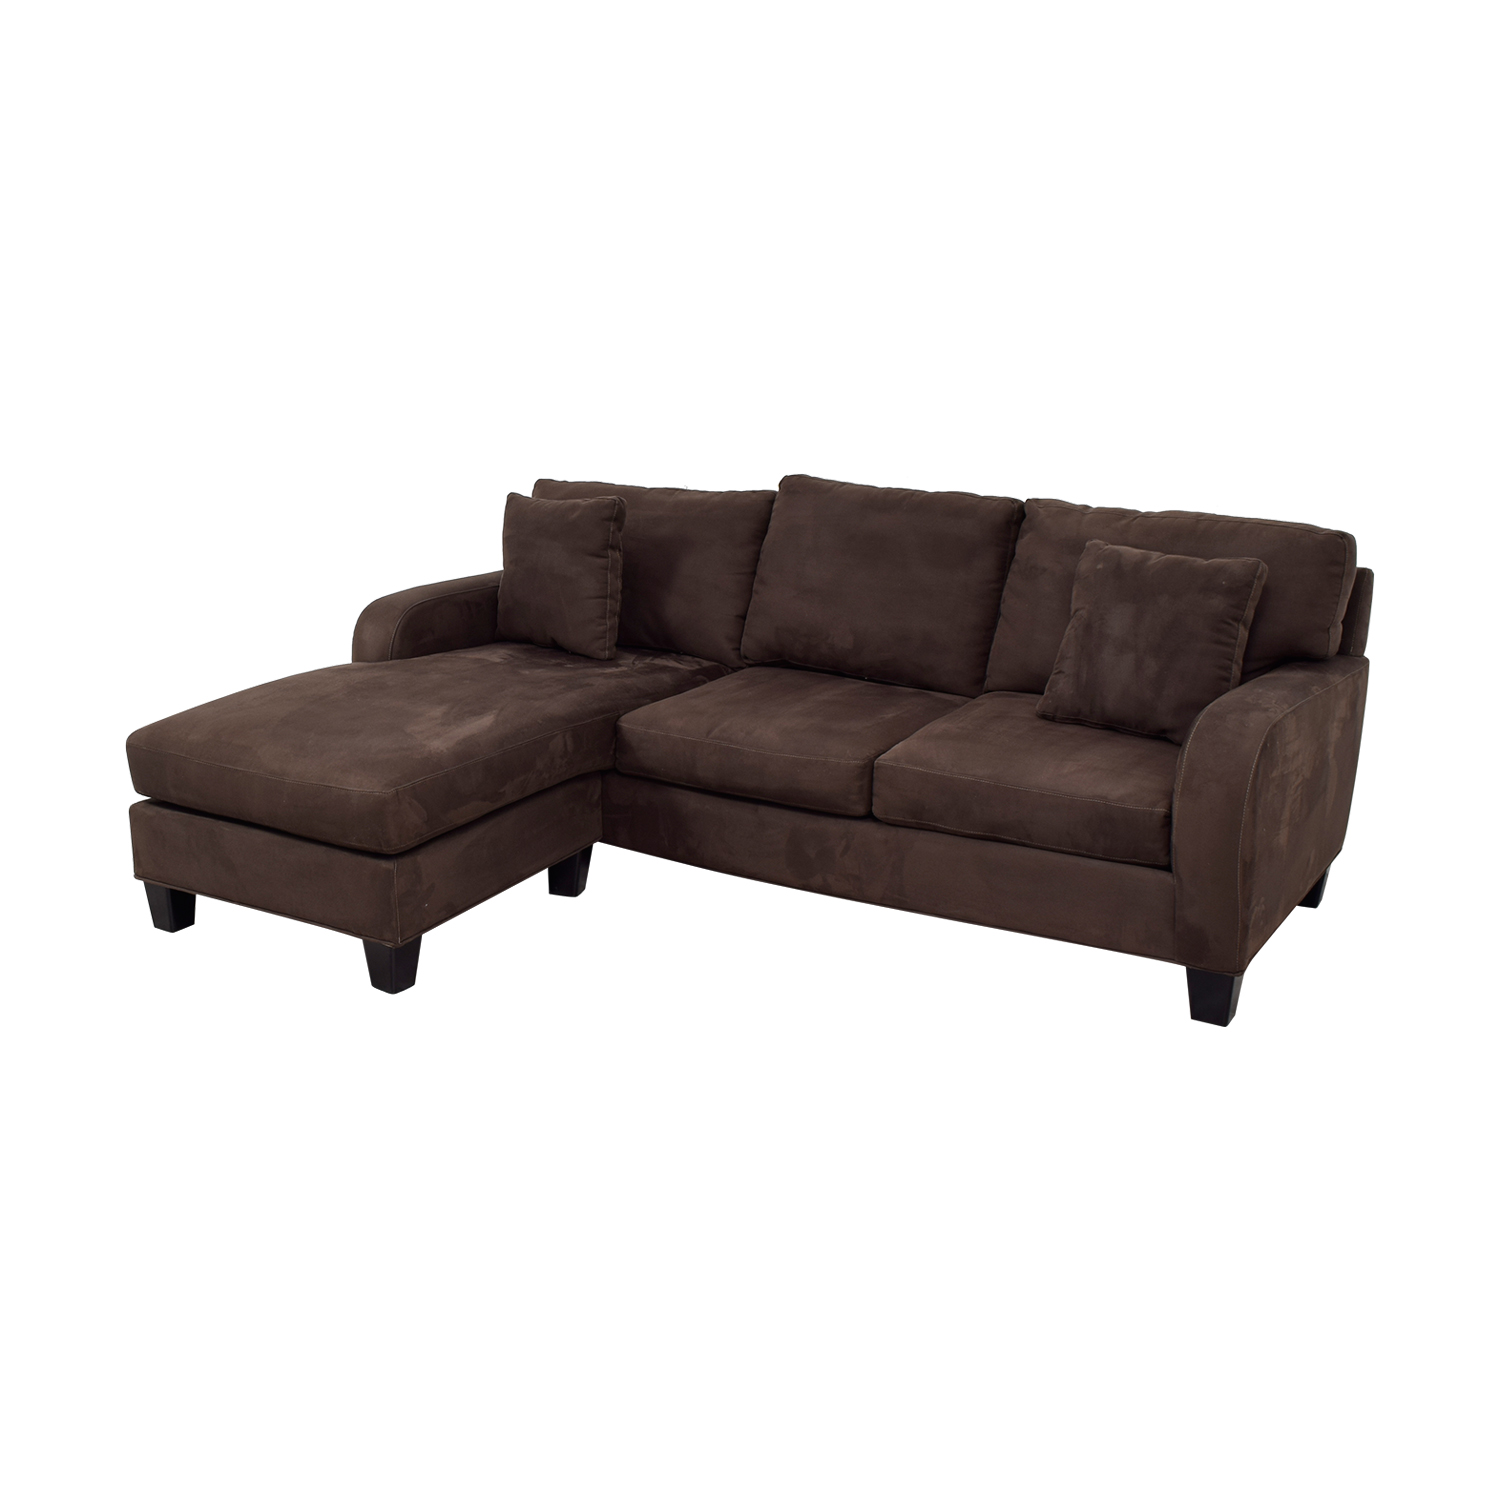 ... Cindy Crawford Home Cindy Crawford Home Brown Chaise Sectional Nyc ...